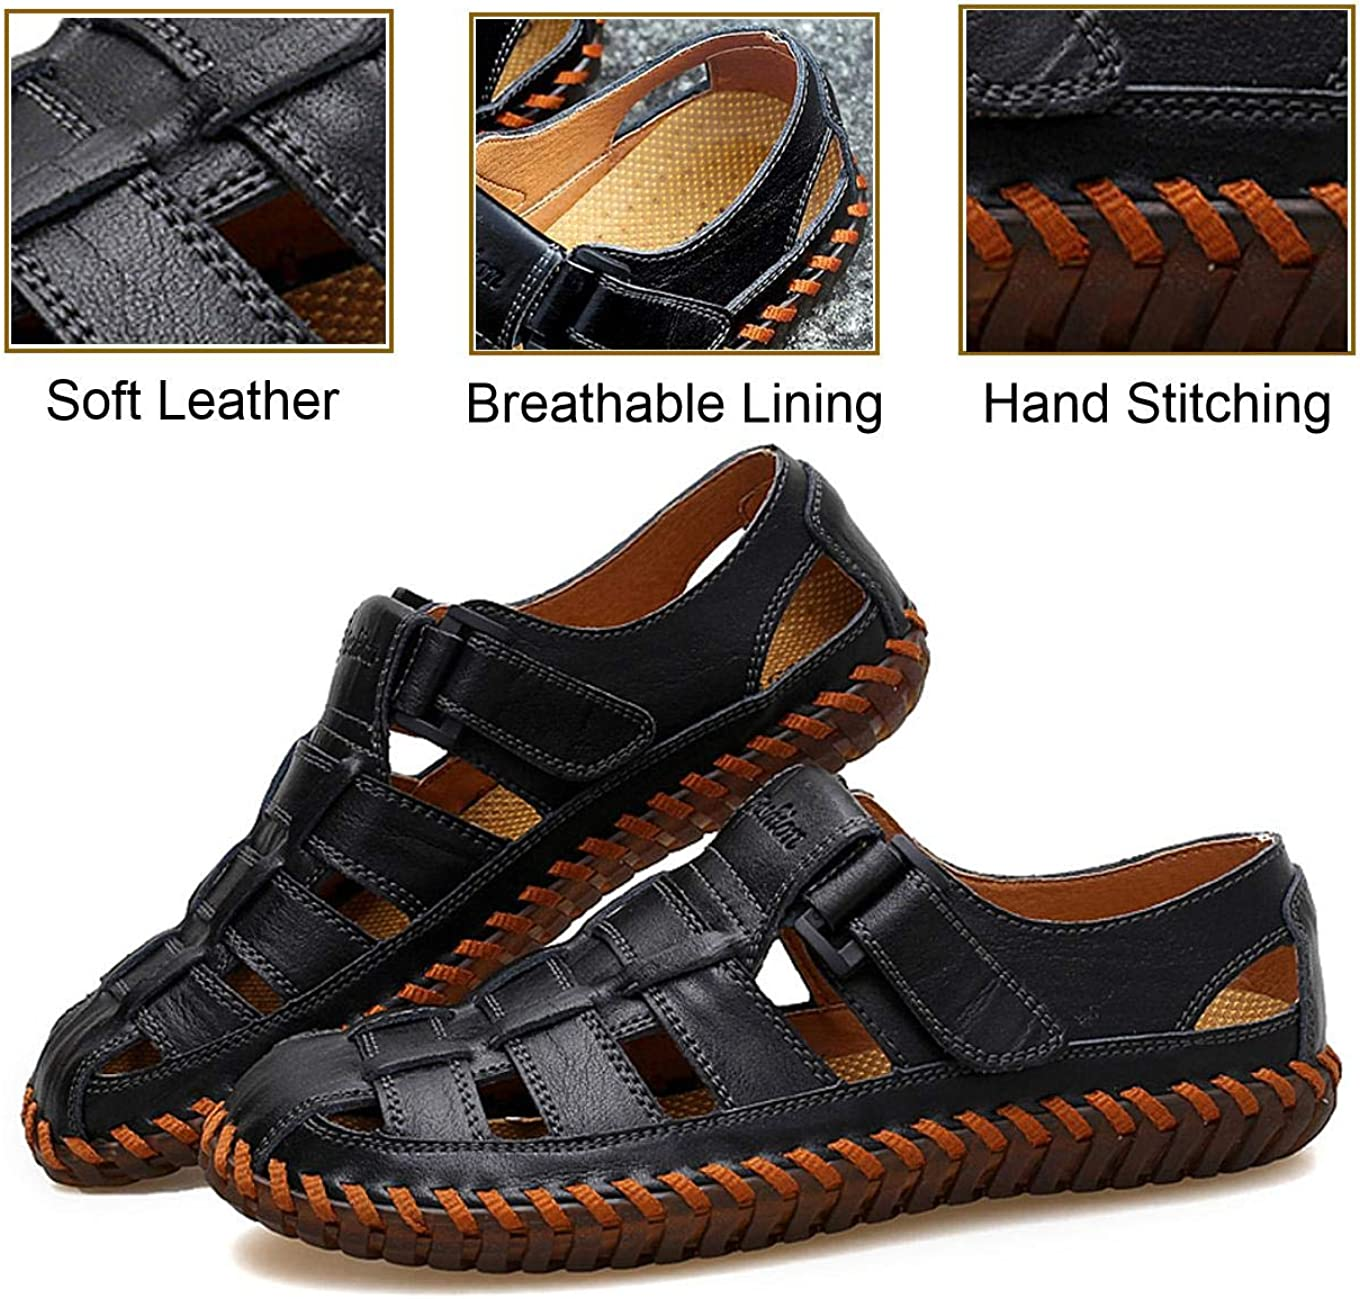 Jun Mens Sport Sandals Breathable Outdoor Fisherman Shoes Adjustable Closed Toe Summer Leather Loafters Color : Black, Size : 10.5 M US